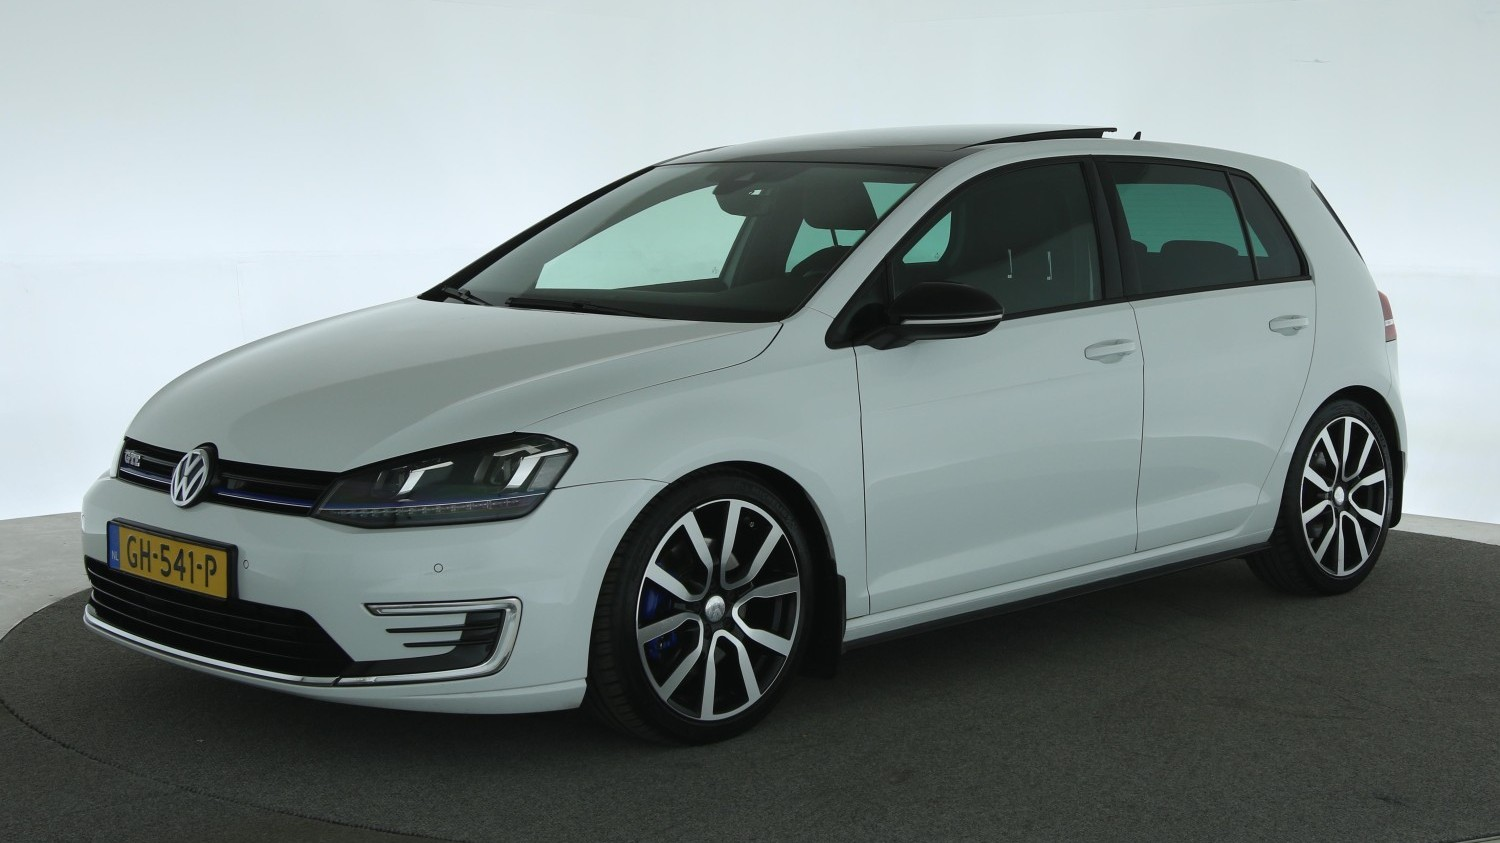 Volkswagen Golf Hatchback 2015 GH-541-P 1